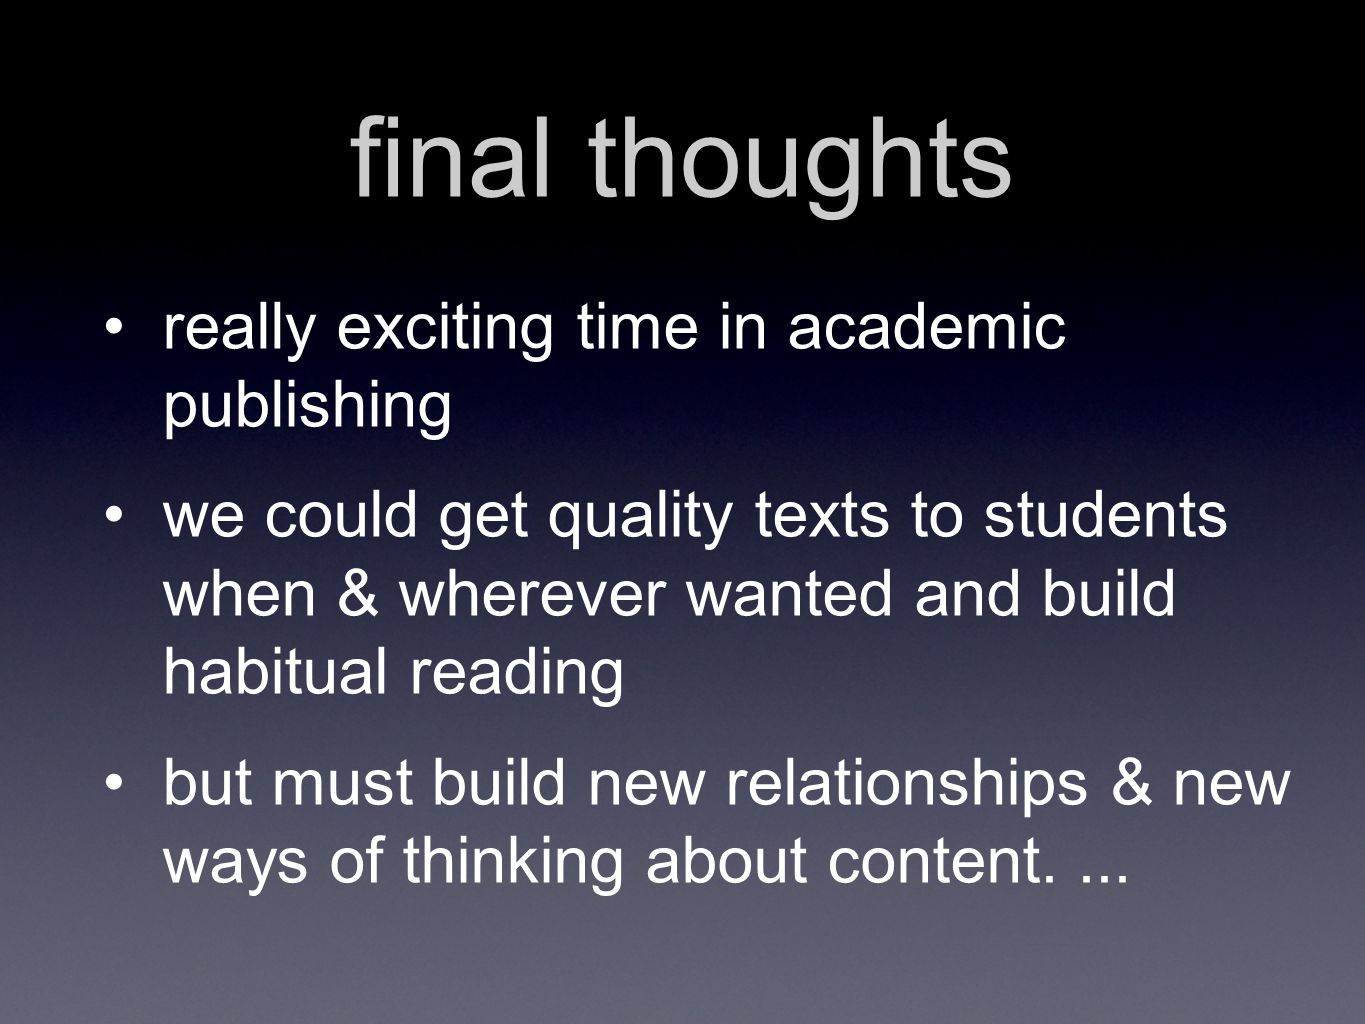 final thoughts really exciting time in academic publishing we could get quality texts to students when & wherever wanted and build habitual reading but must build new relationships & new ways of thinking about content....